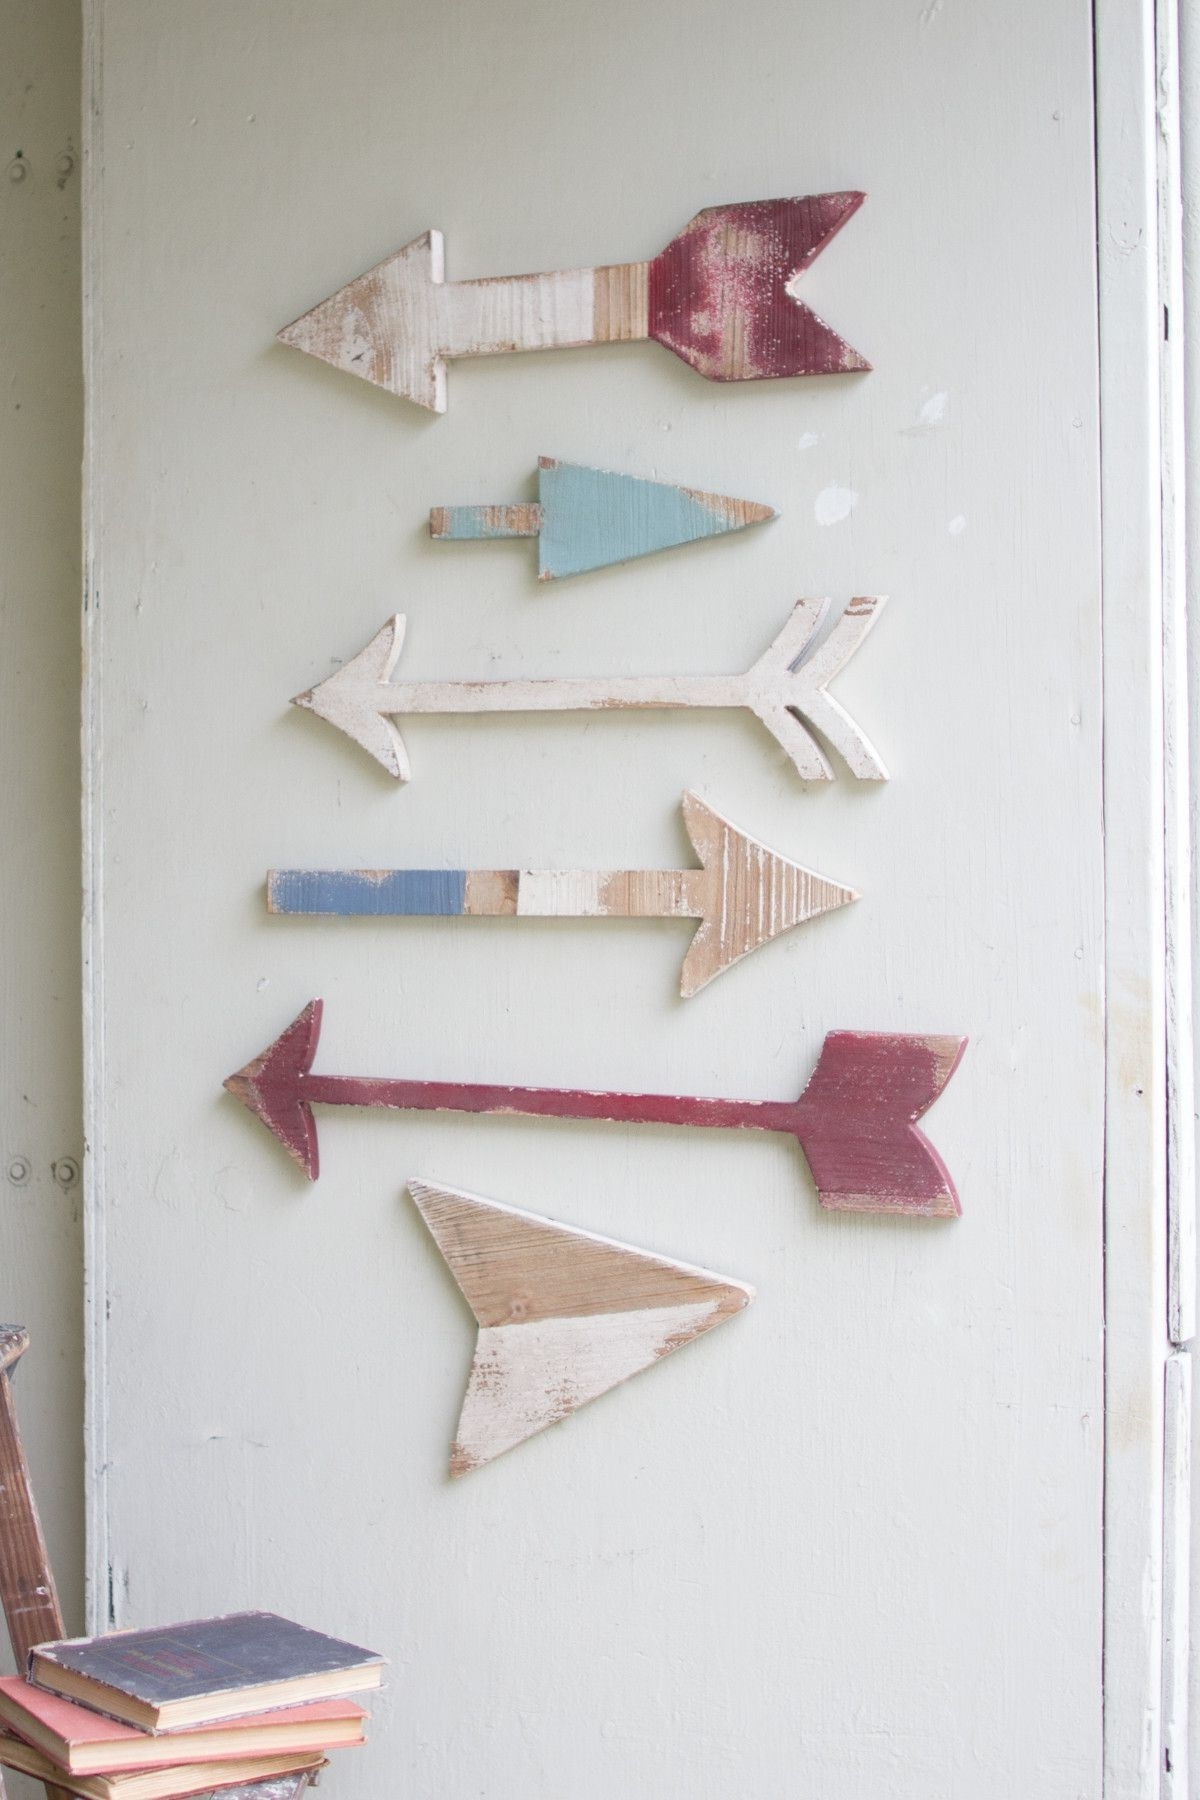 Recent Arrow Wall Art Intended For The Kalalou Wooden Arrows Wall Art Is Colorful And Will Give A Touch (View 15 of 15)